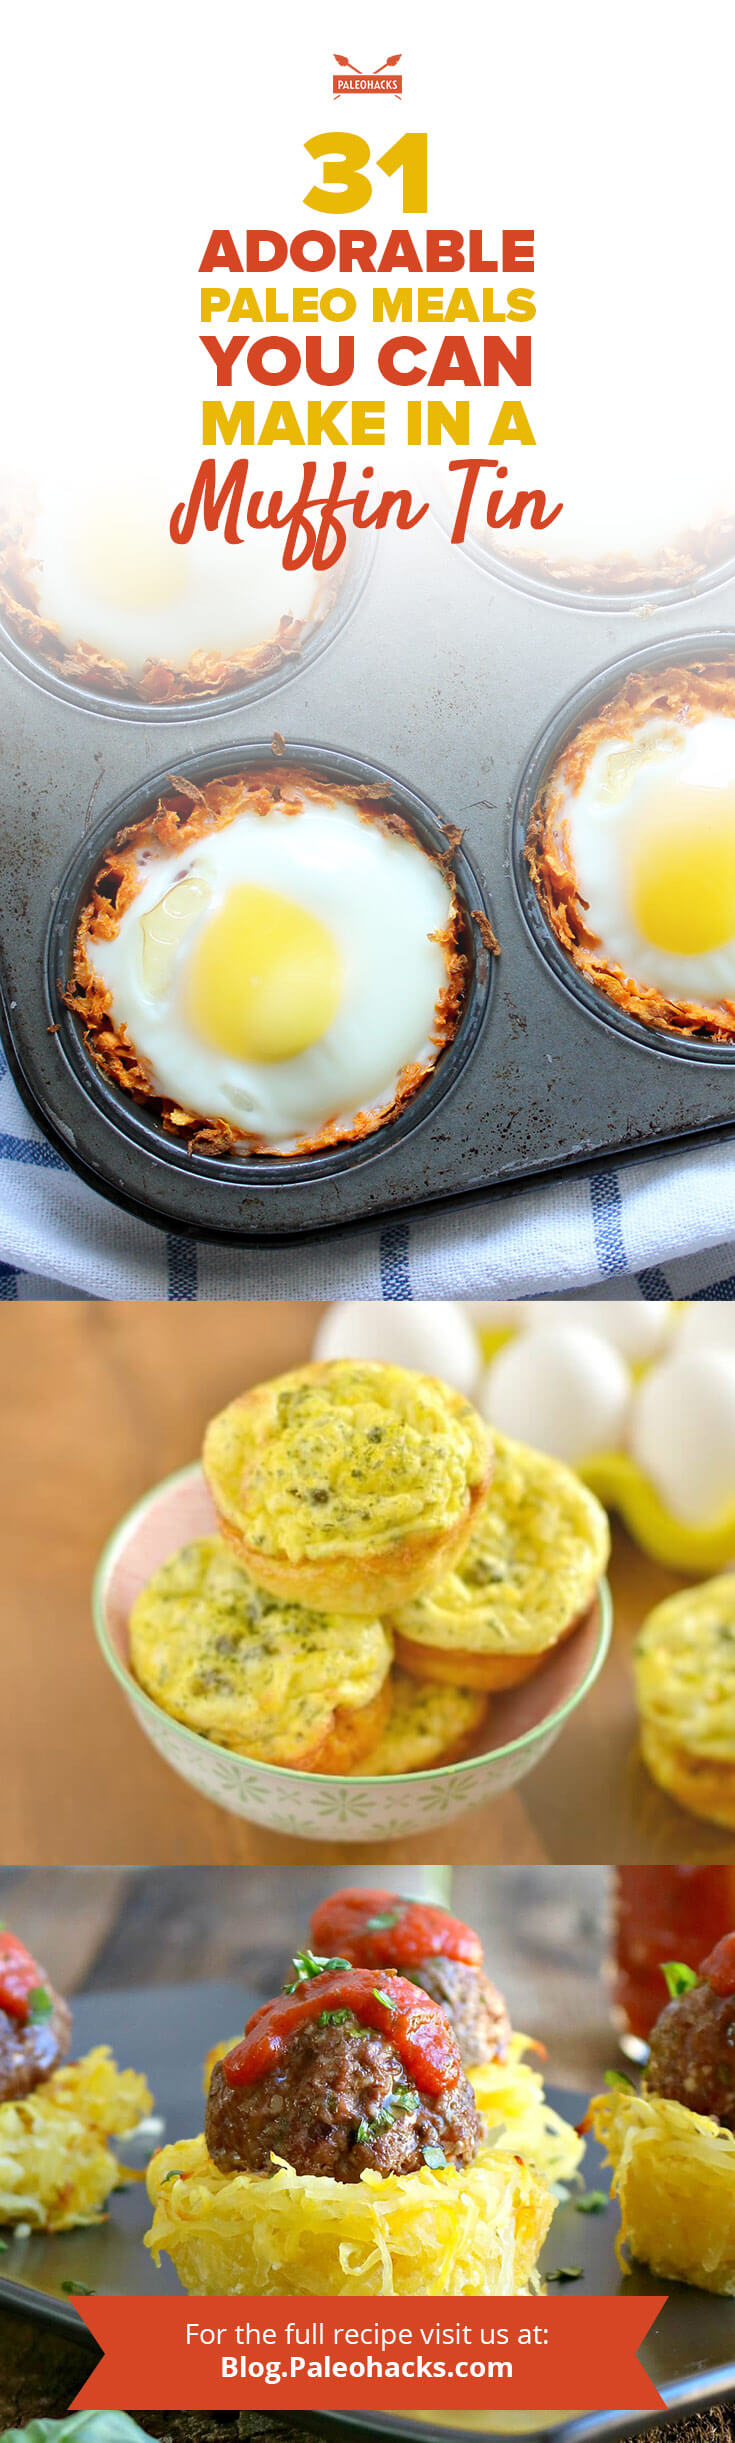 31 adorable paleo muffin tin meals paleohacks blog compilation pin 31 adorable paleo meals you can forumfinder Images